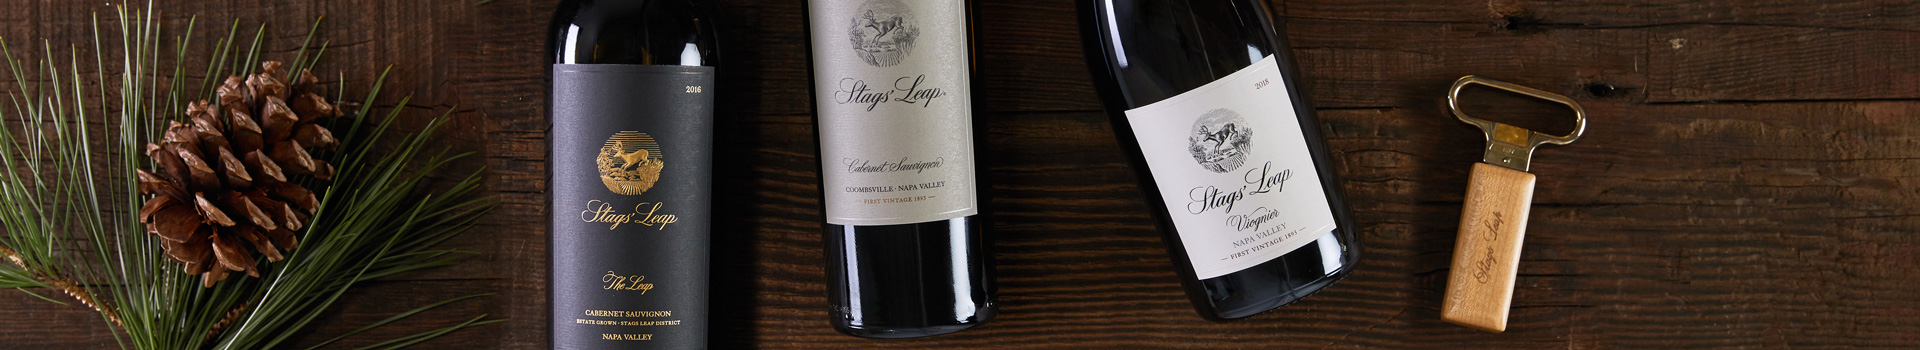 Stags' Leap Napa Valley Cabernet Sauvignon - Coombsville & The Leap